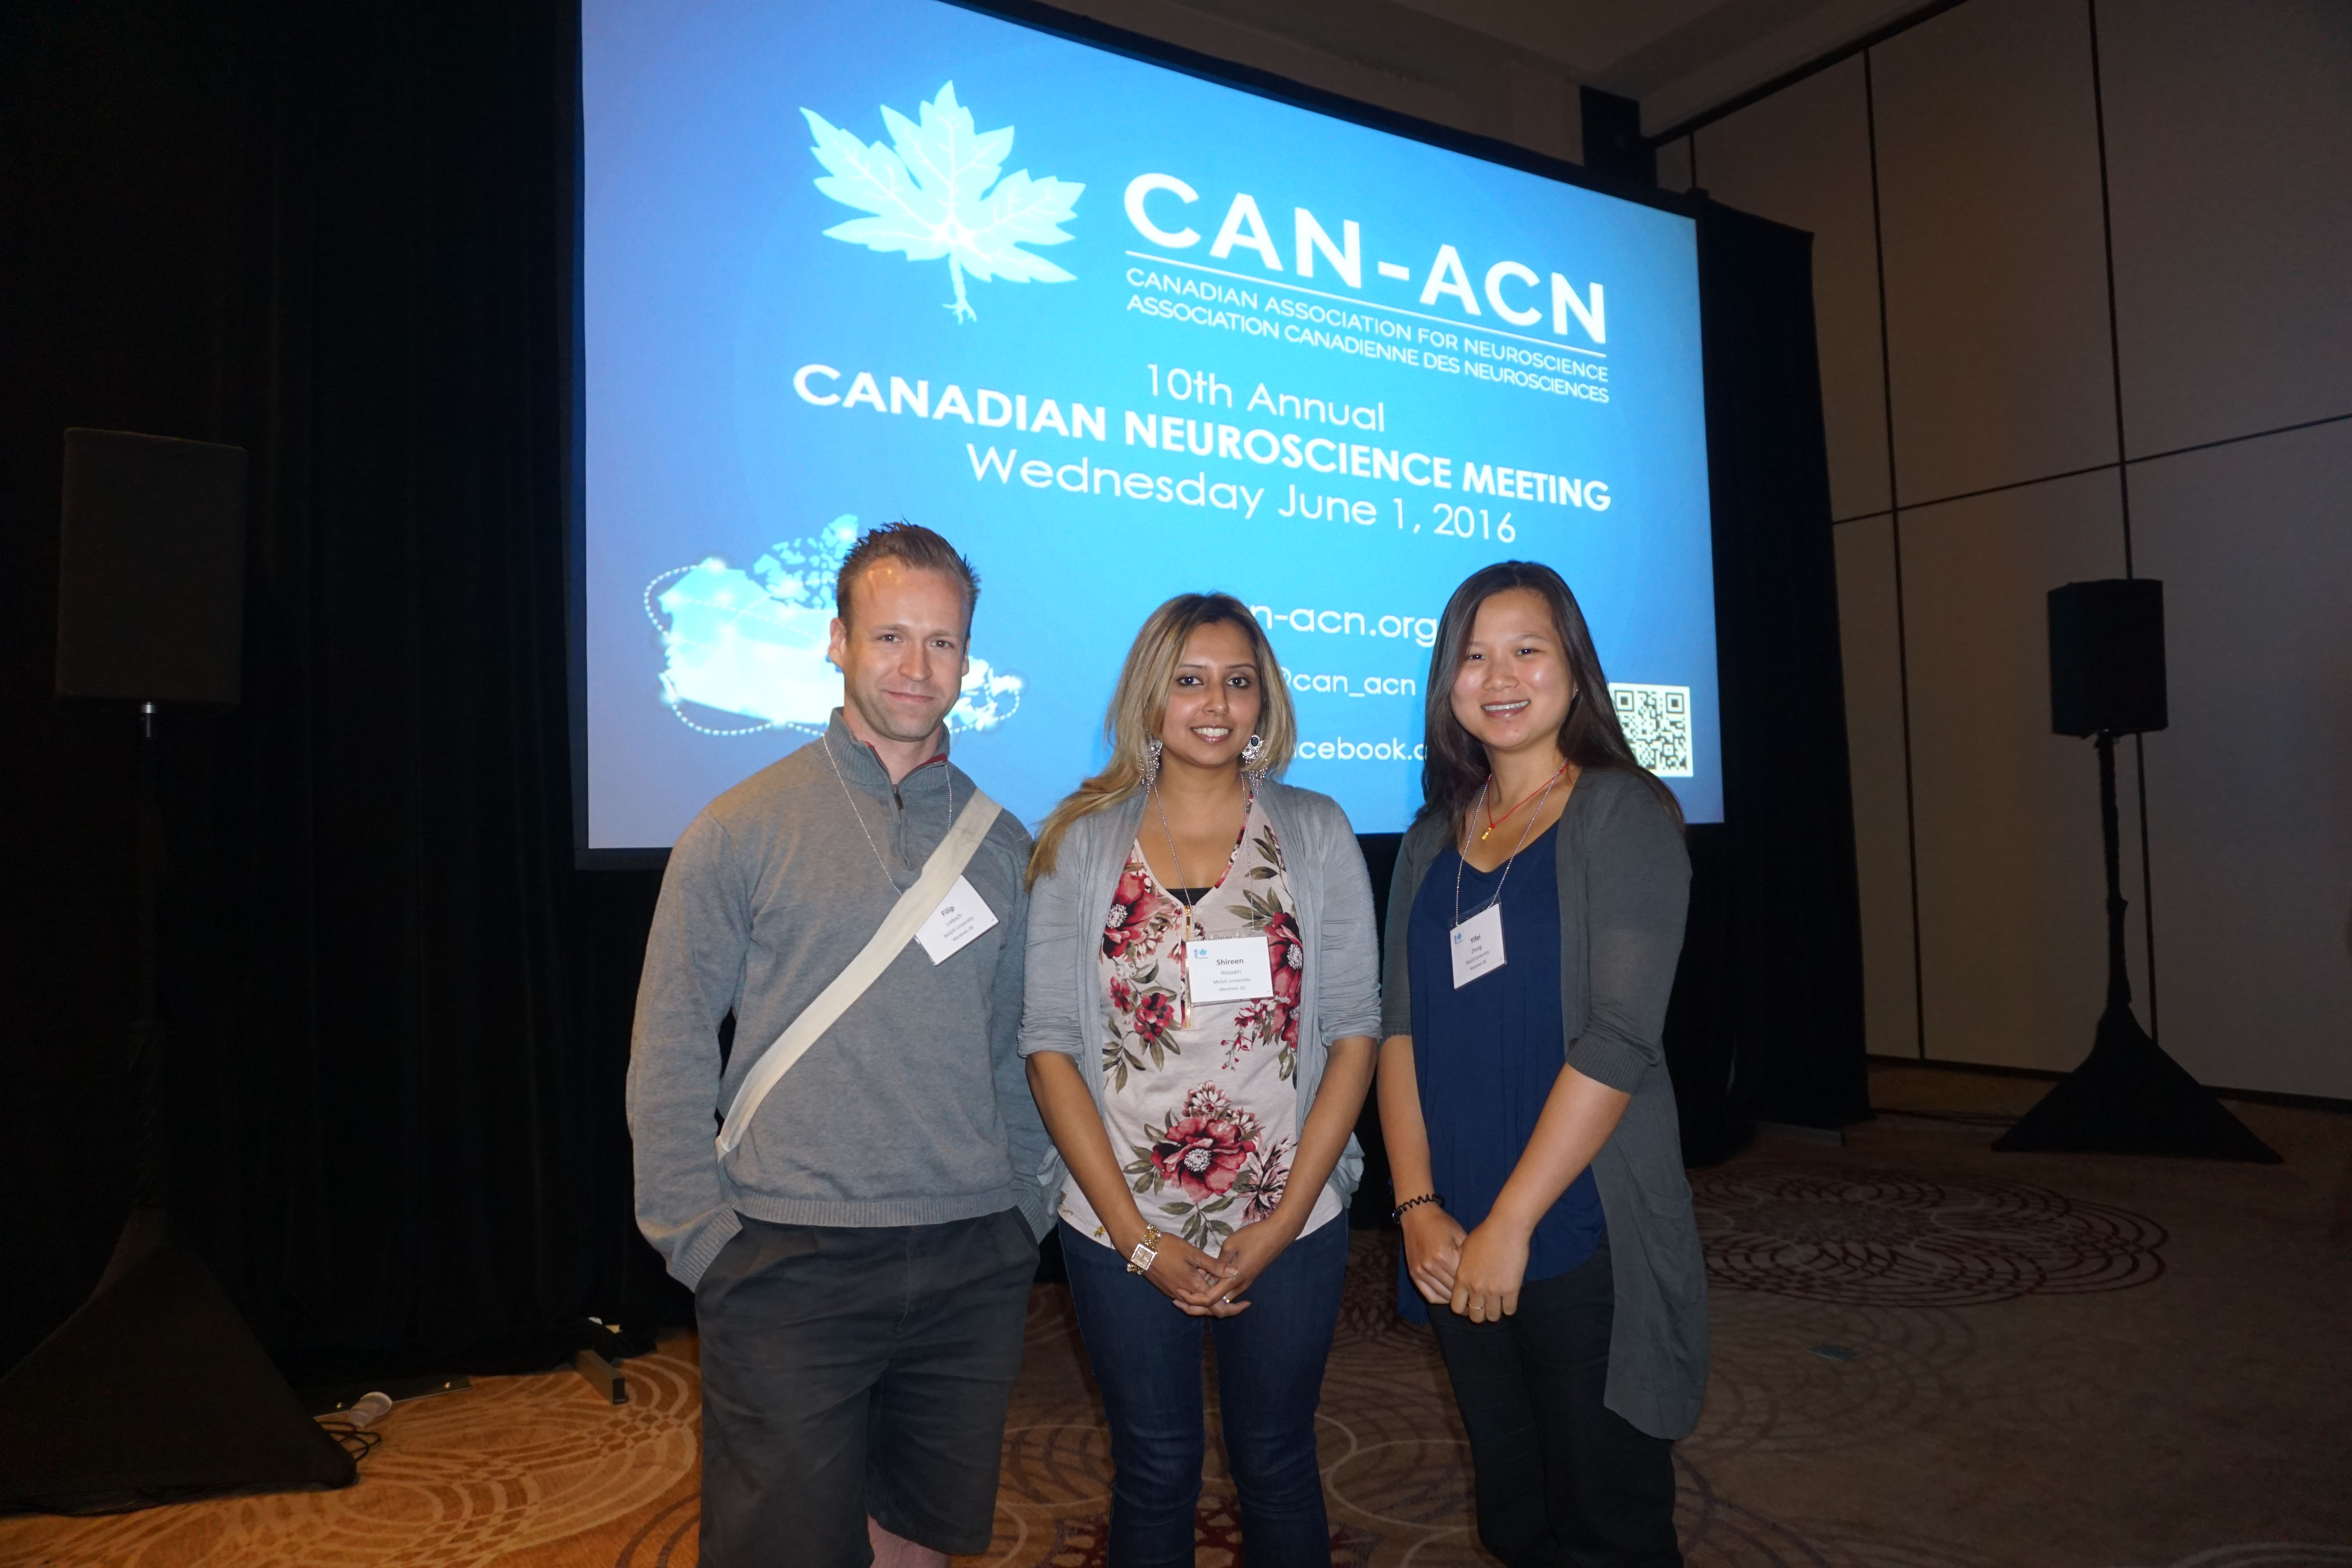 CAN Conference 2016, Jun 2016